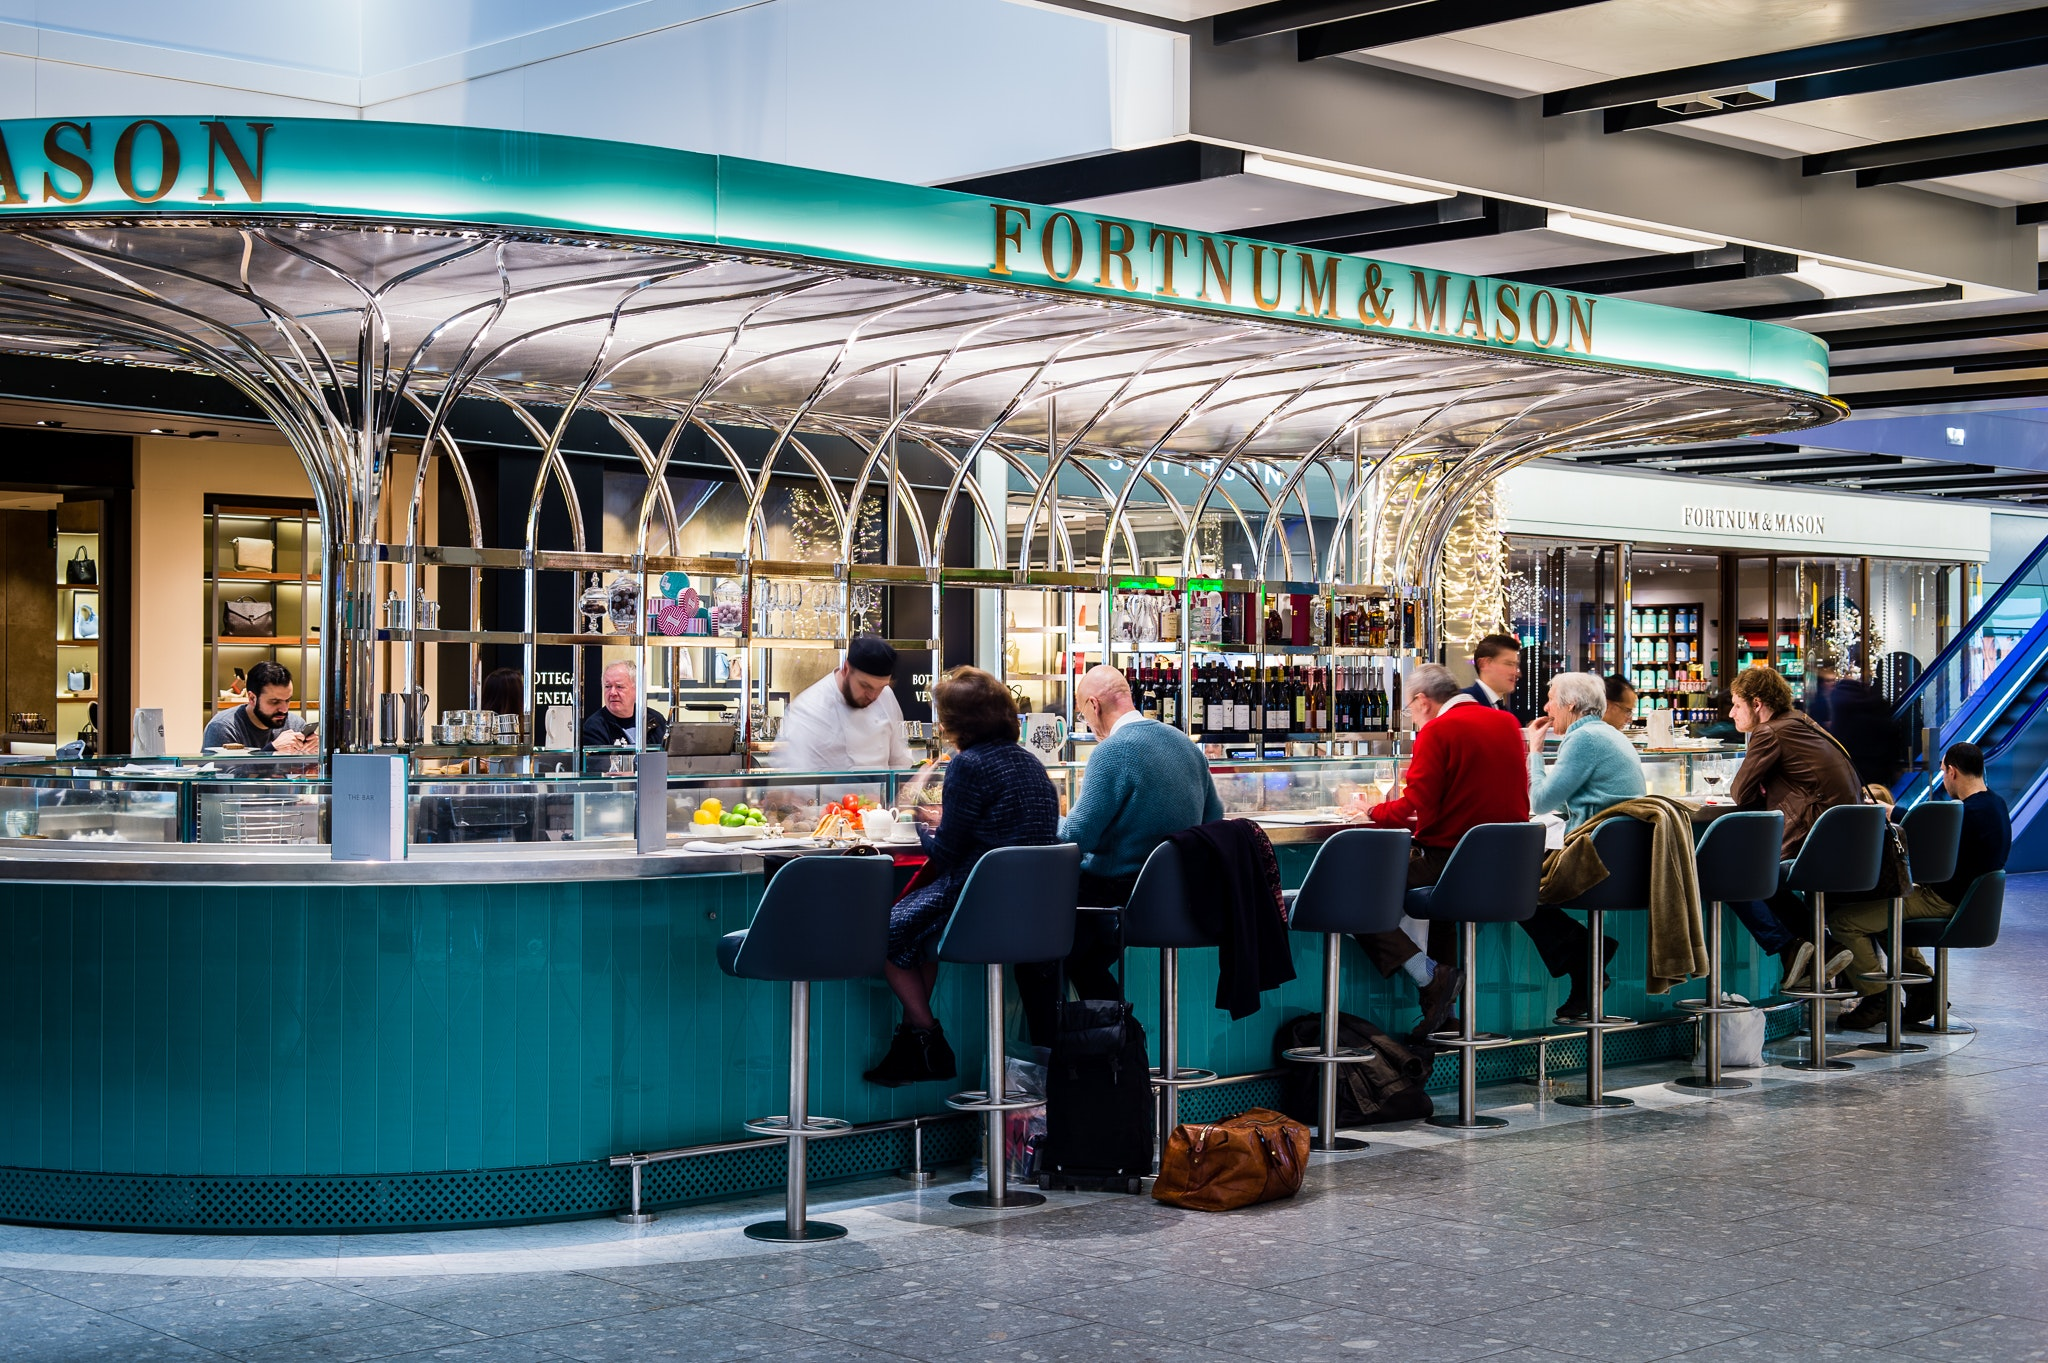 At Heathrow's Fortnum & Mason Bar, you can order champagne, wine, or a cocktail to go.